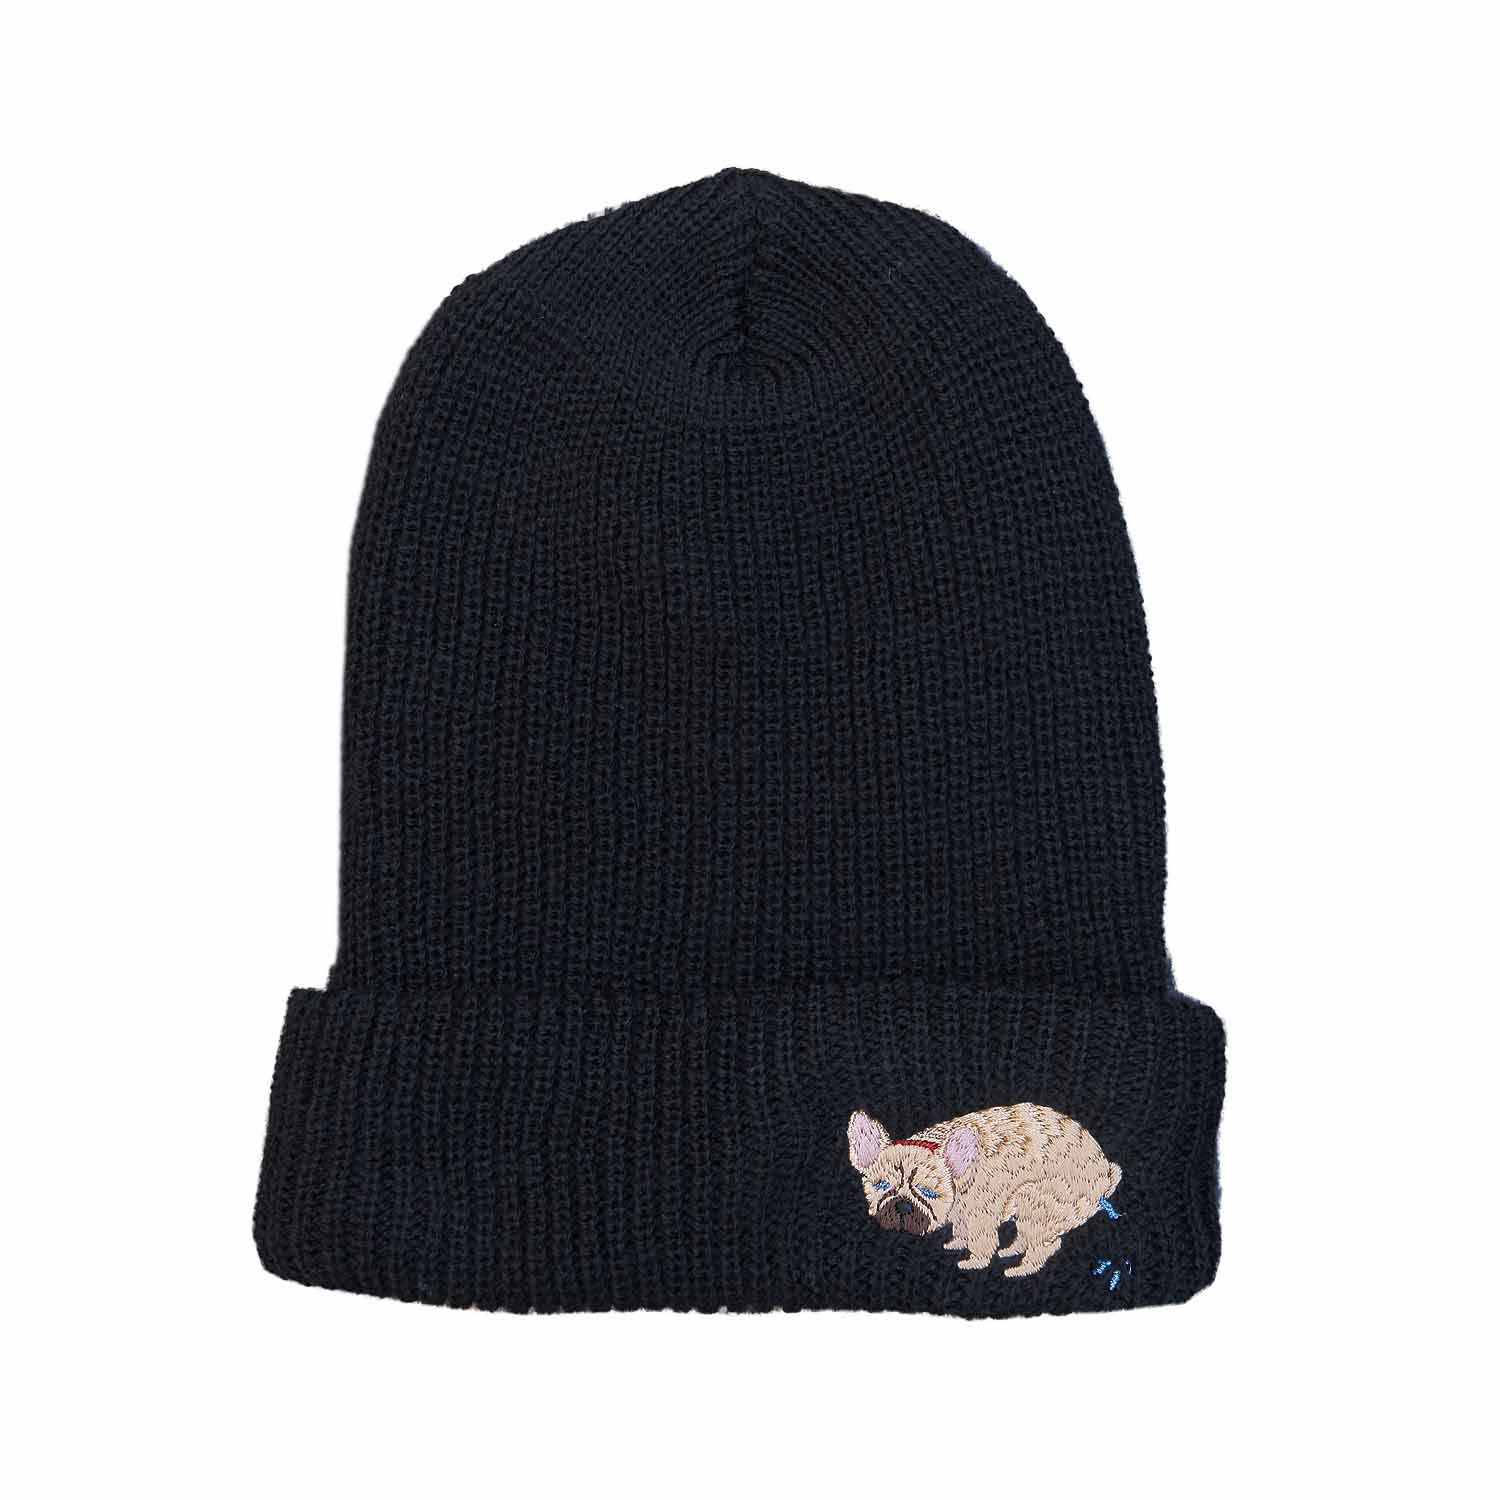 F/B POOPING KNIT CAP - FAWN